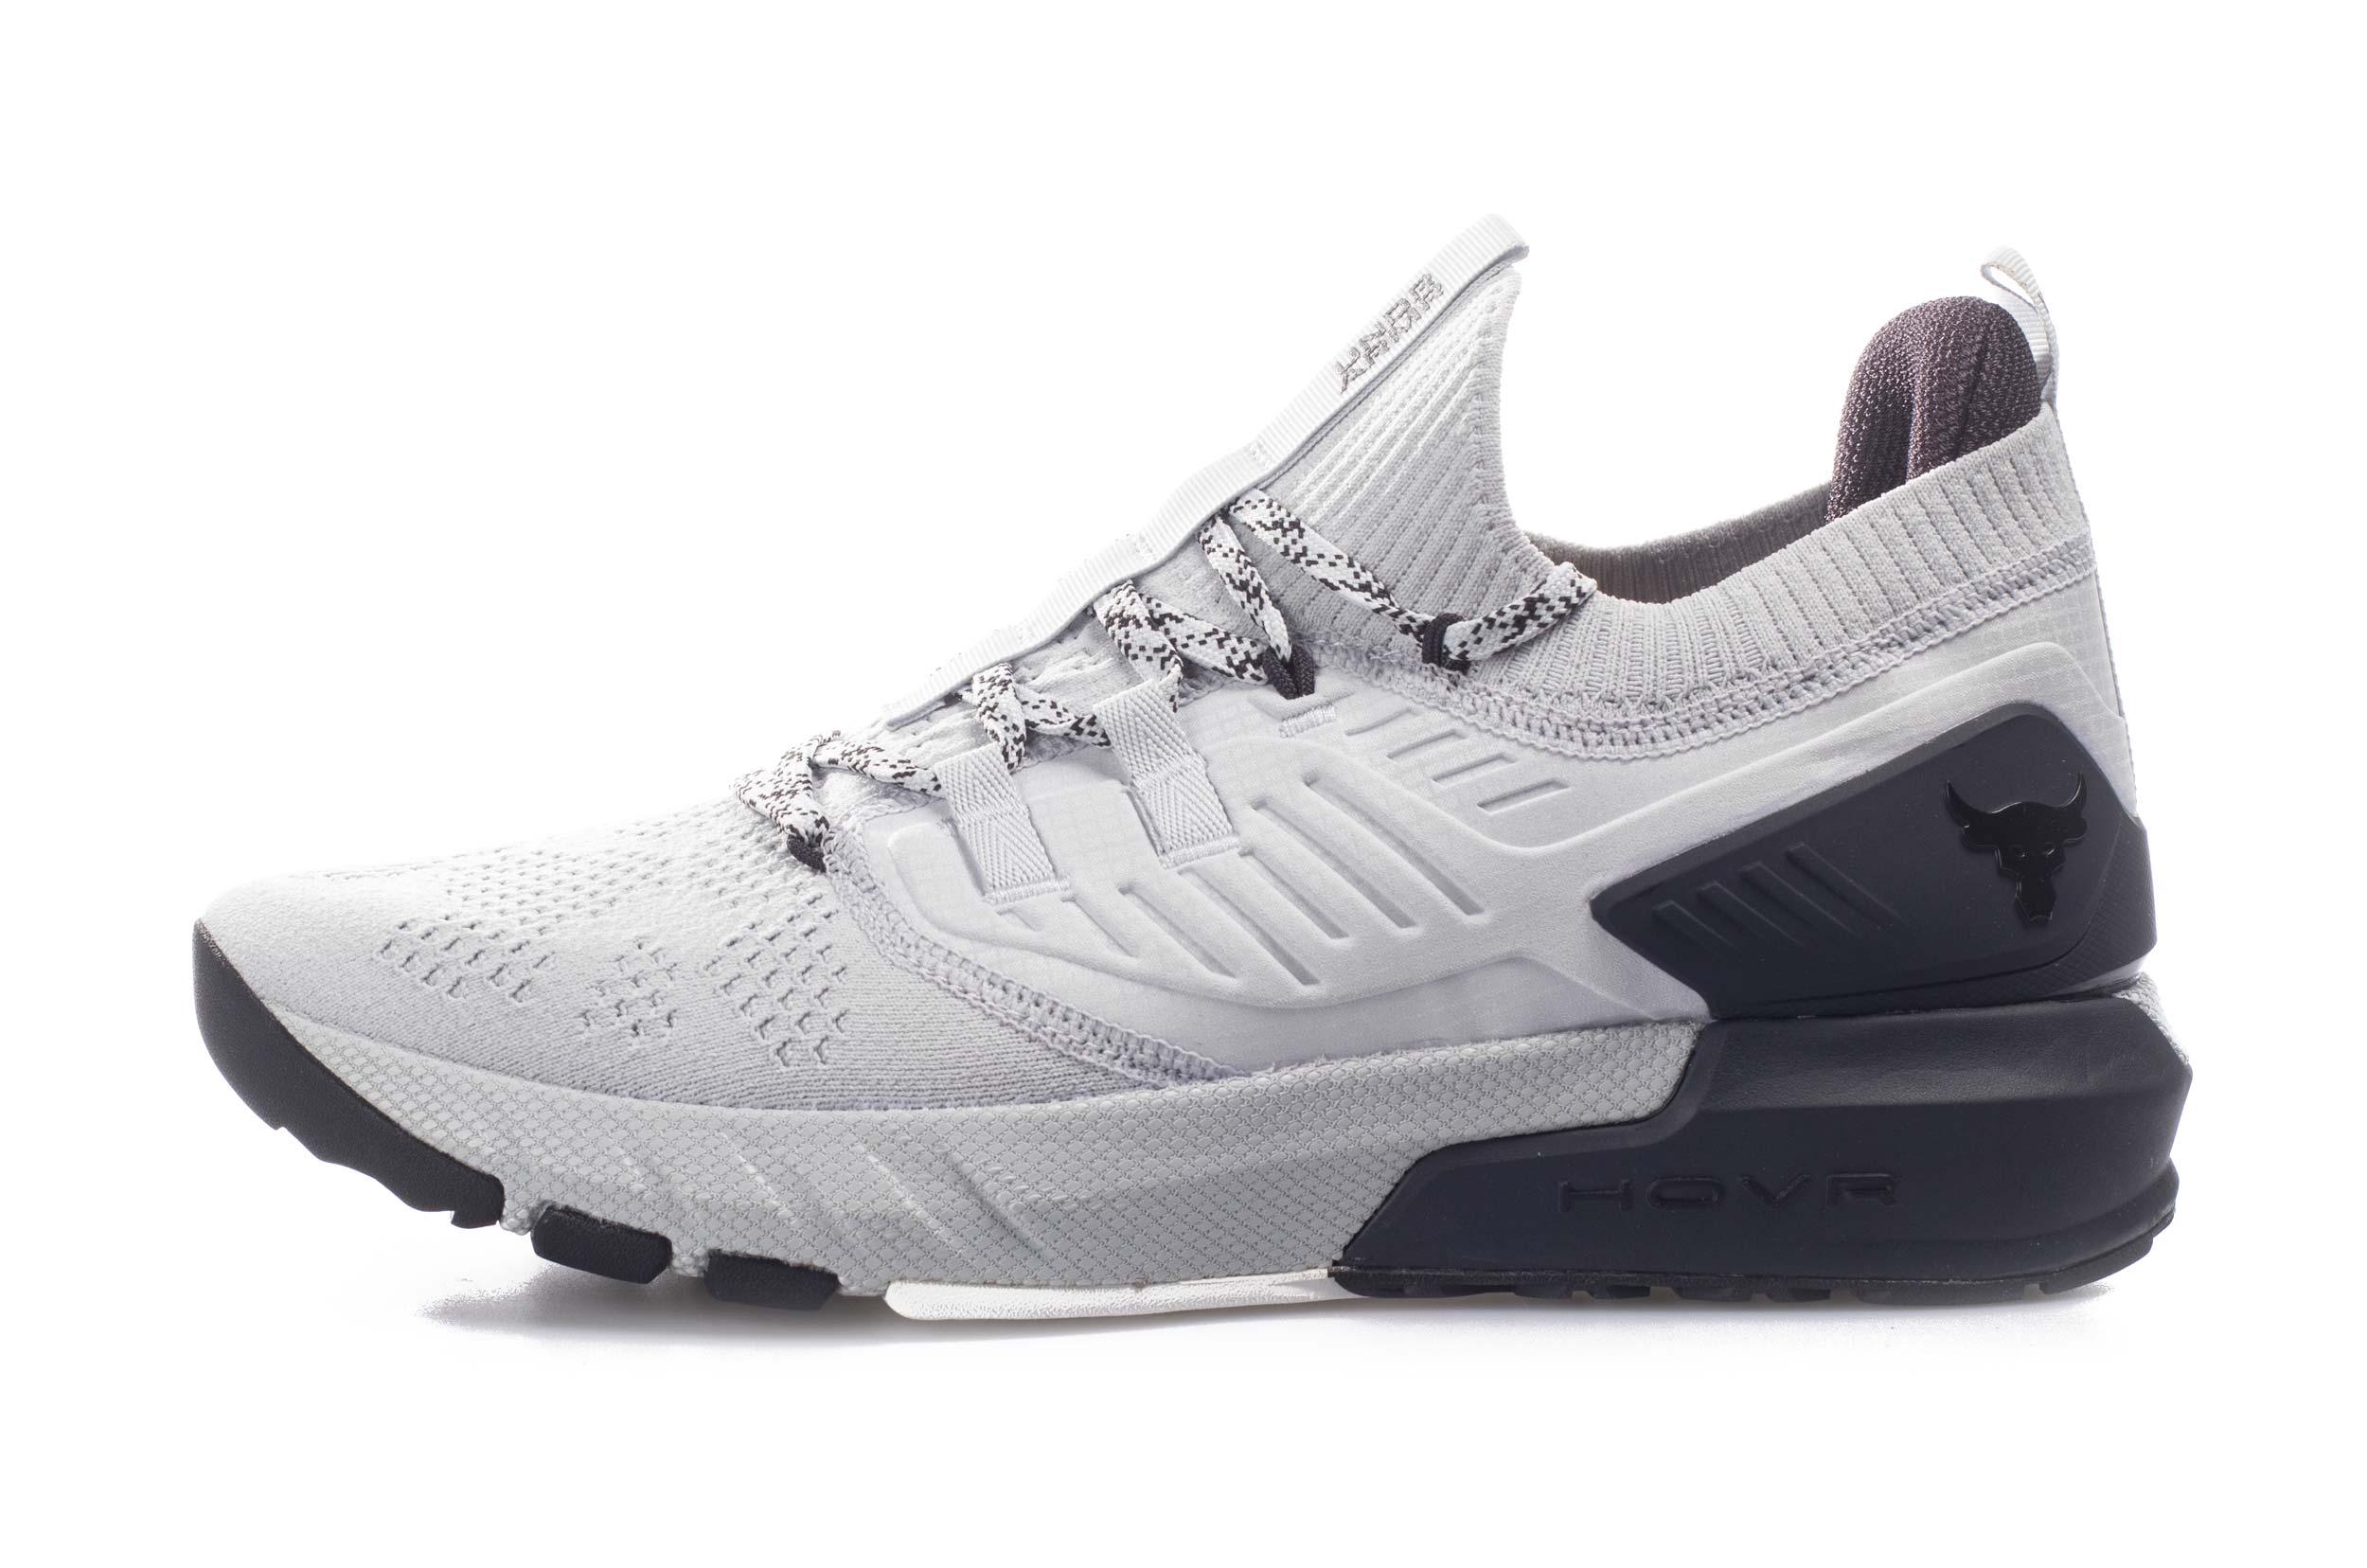 UNDER ARMOUR PROJECT ROCK 3 3023004-100 Γκρί